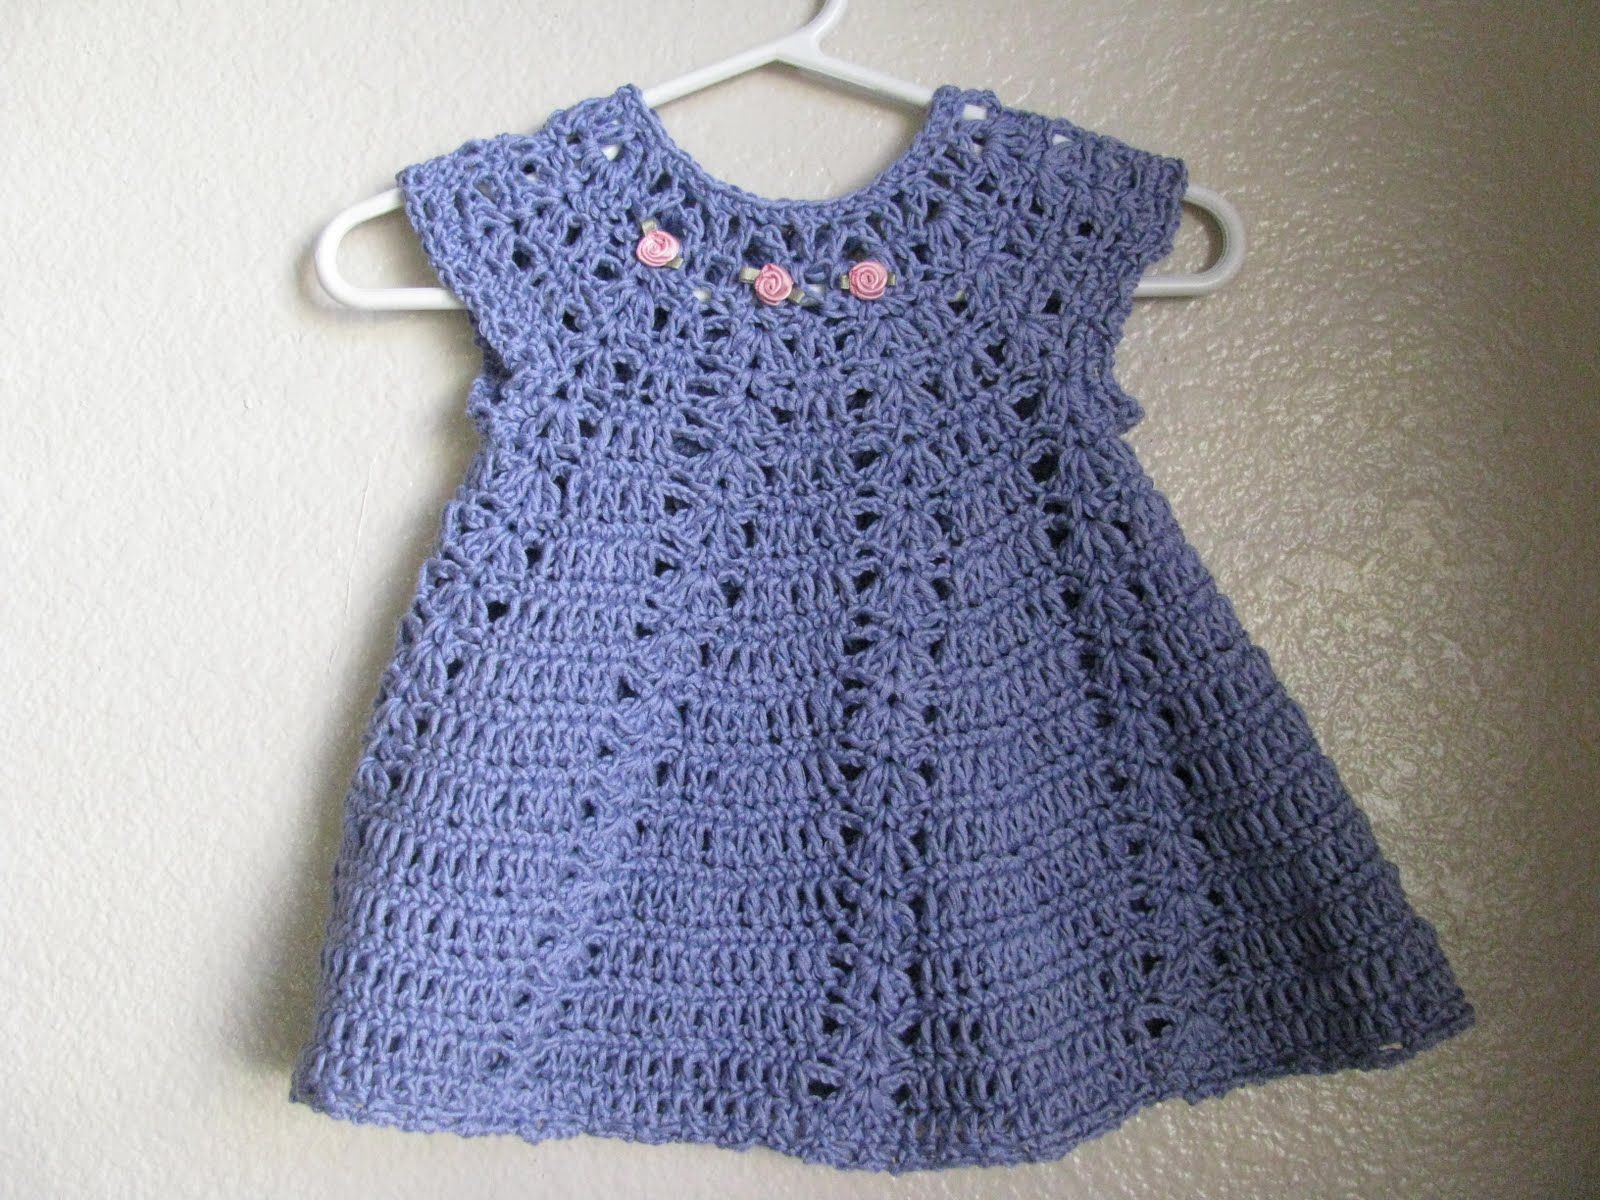 Easy Crochet Baby Dress | My latest project: My first crocheted baby ...